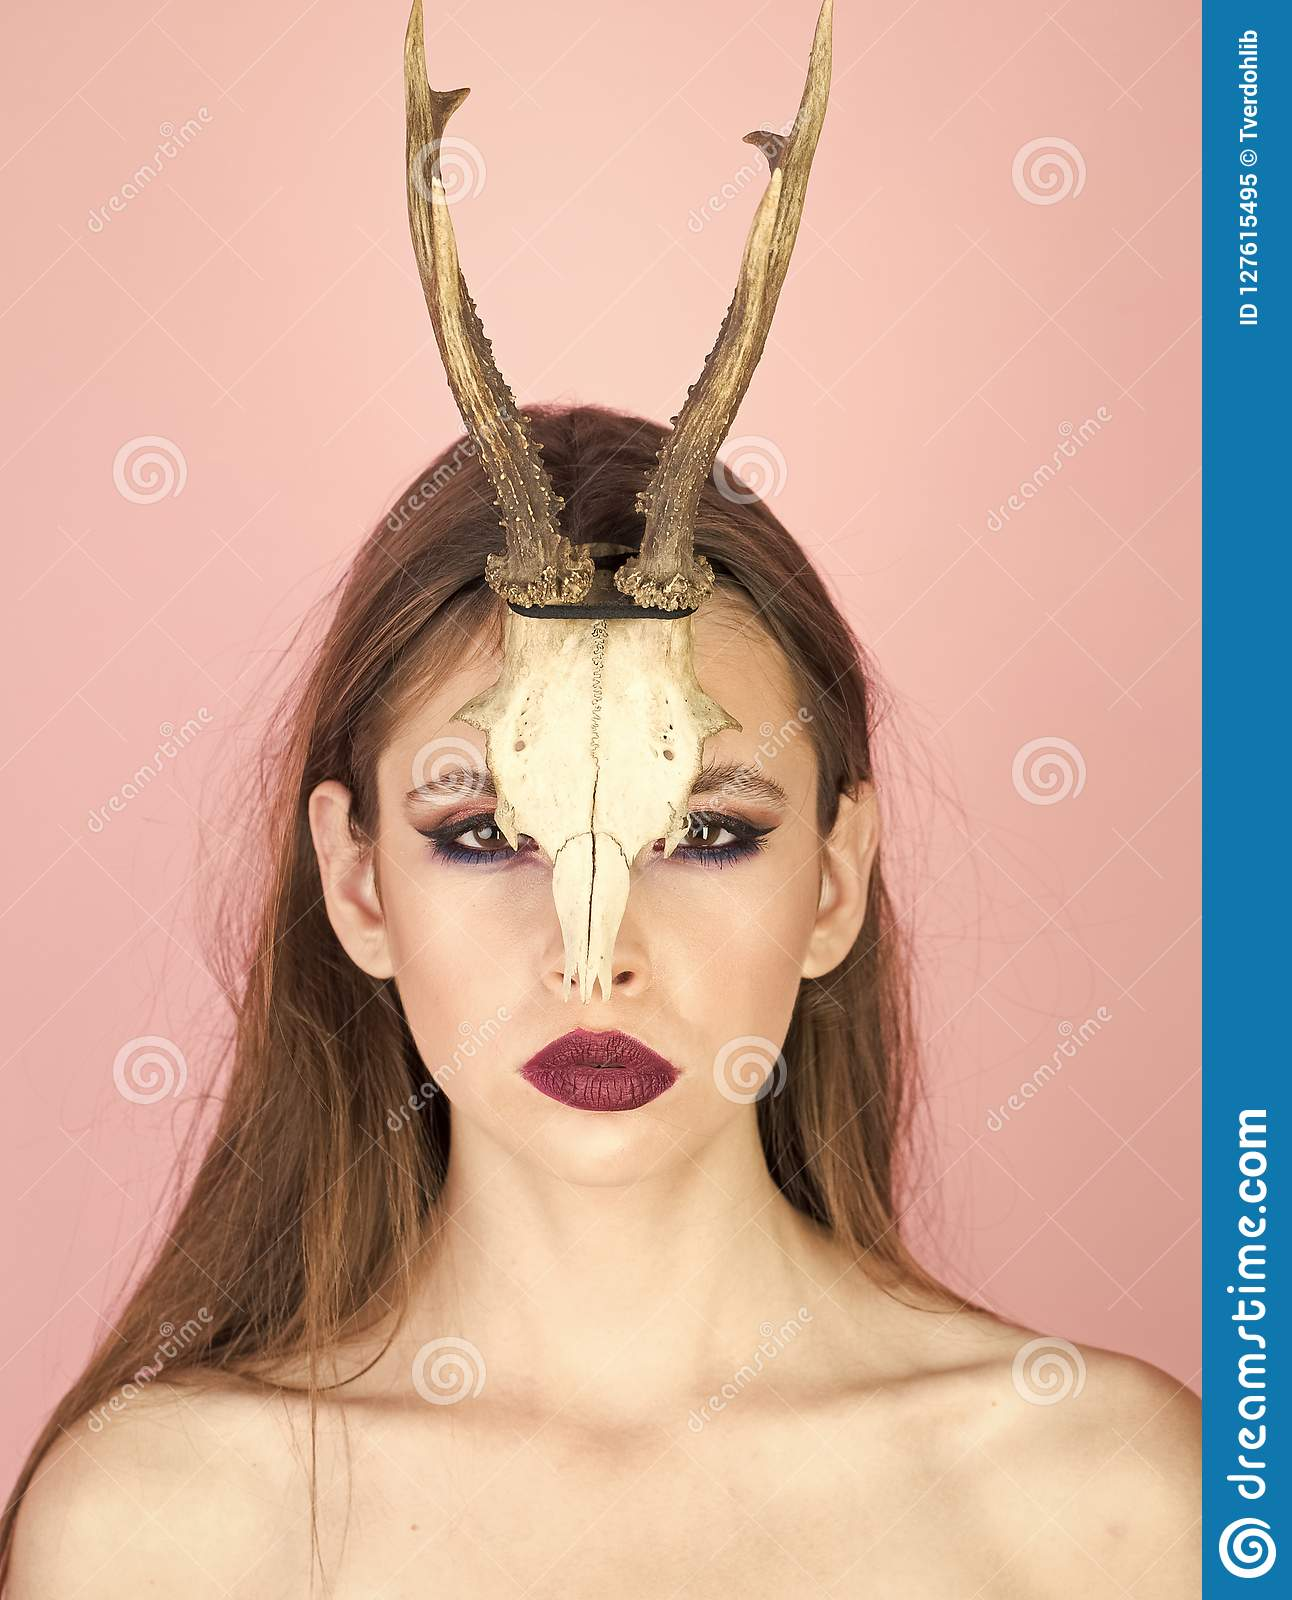 Halloween Makeup Devil Girl.Fashion Devil Of Mystic Shaman Girl With Horns Woman With Makeup